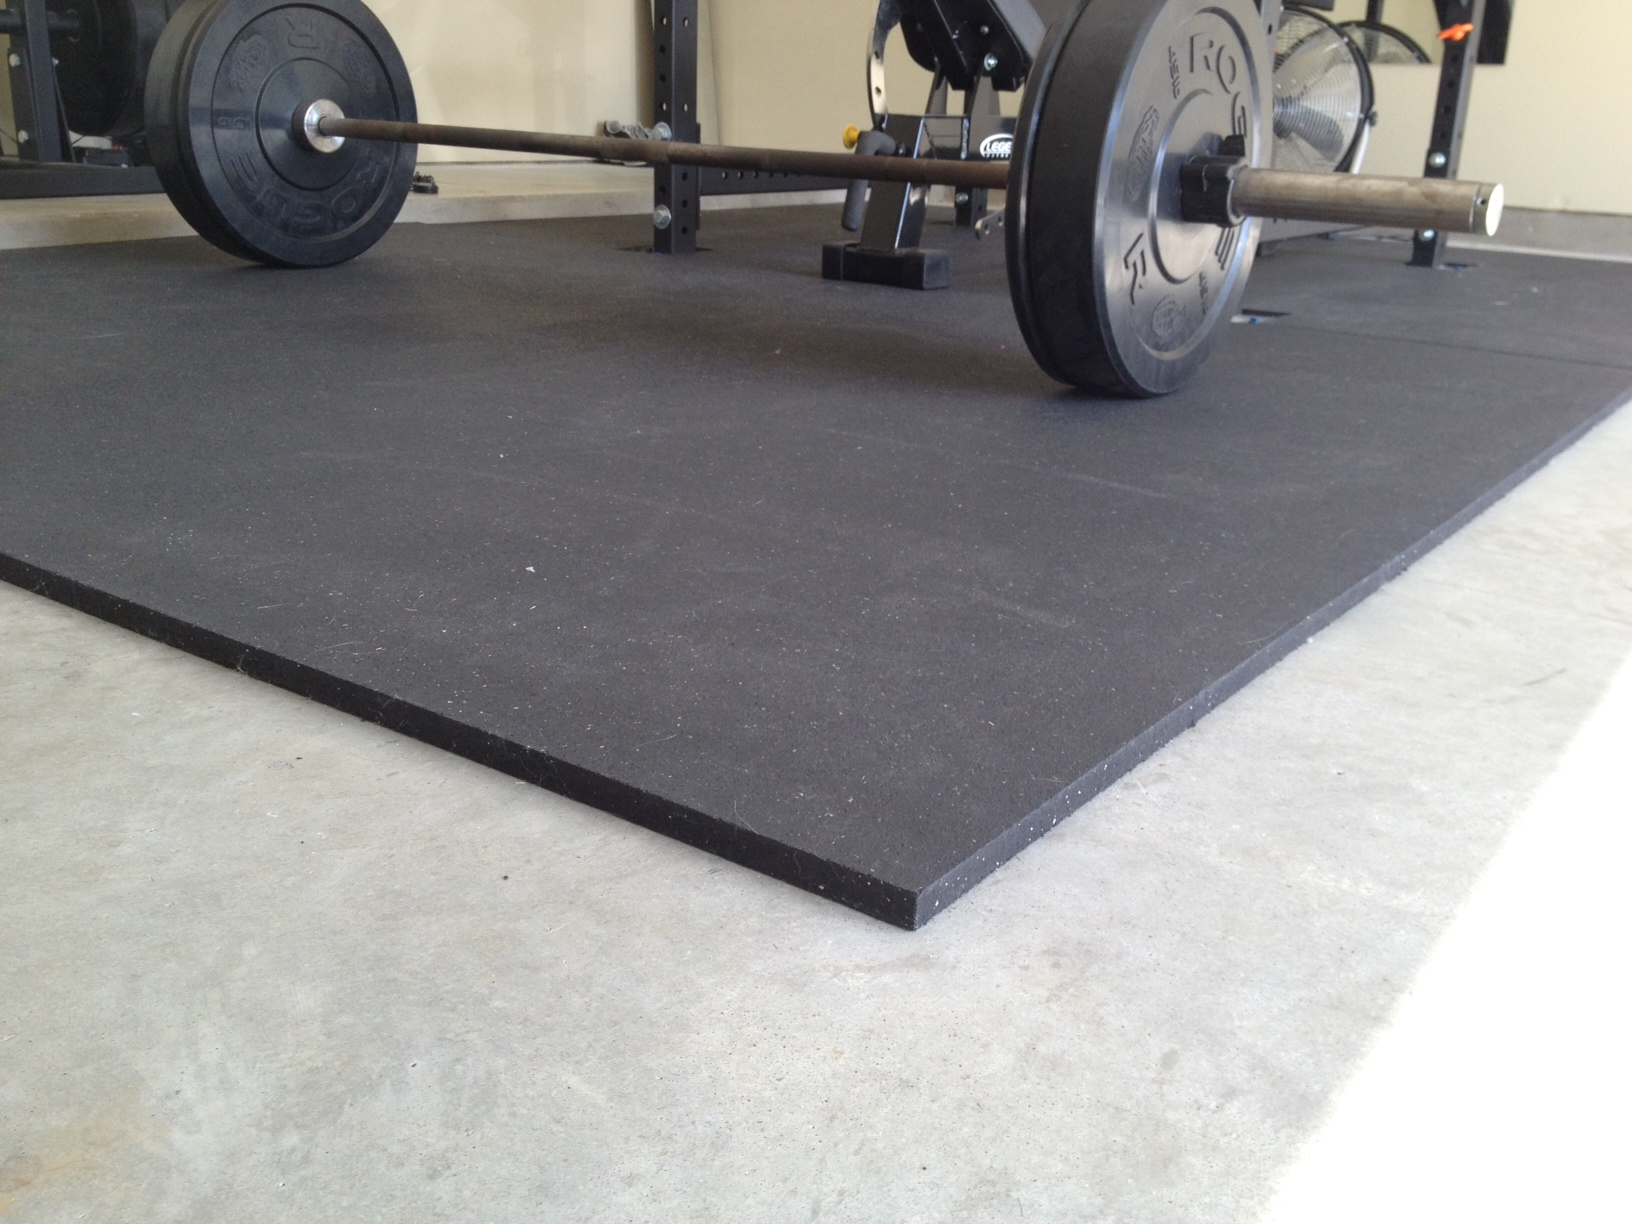 garage my gym mat gymnastics rubber equipment flooring mats your and photo protect options foundation diy for